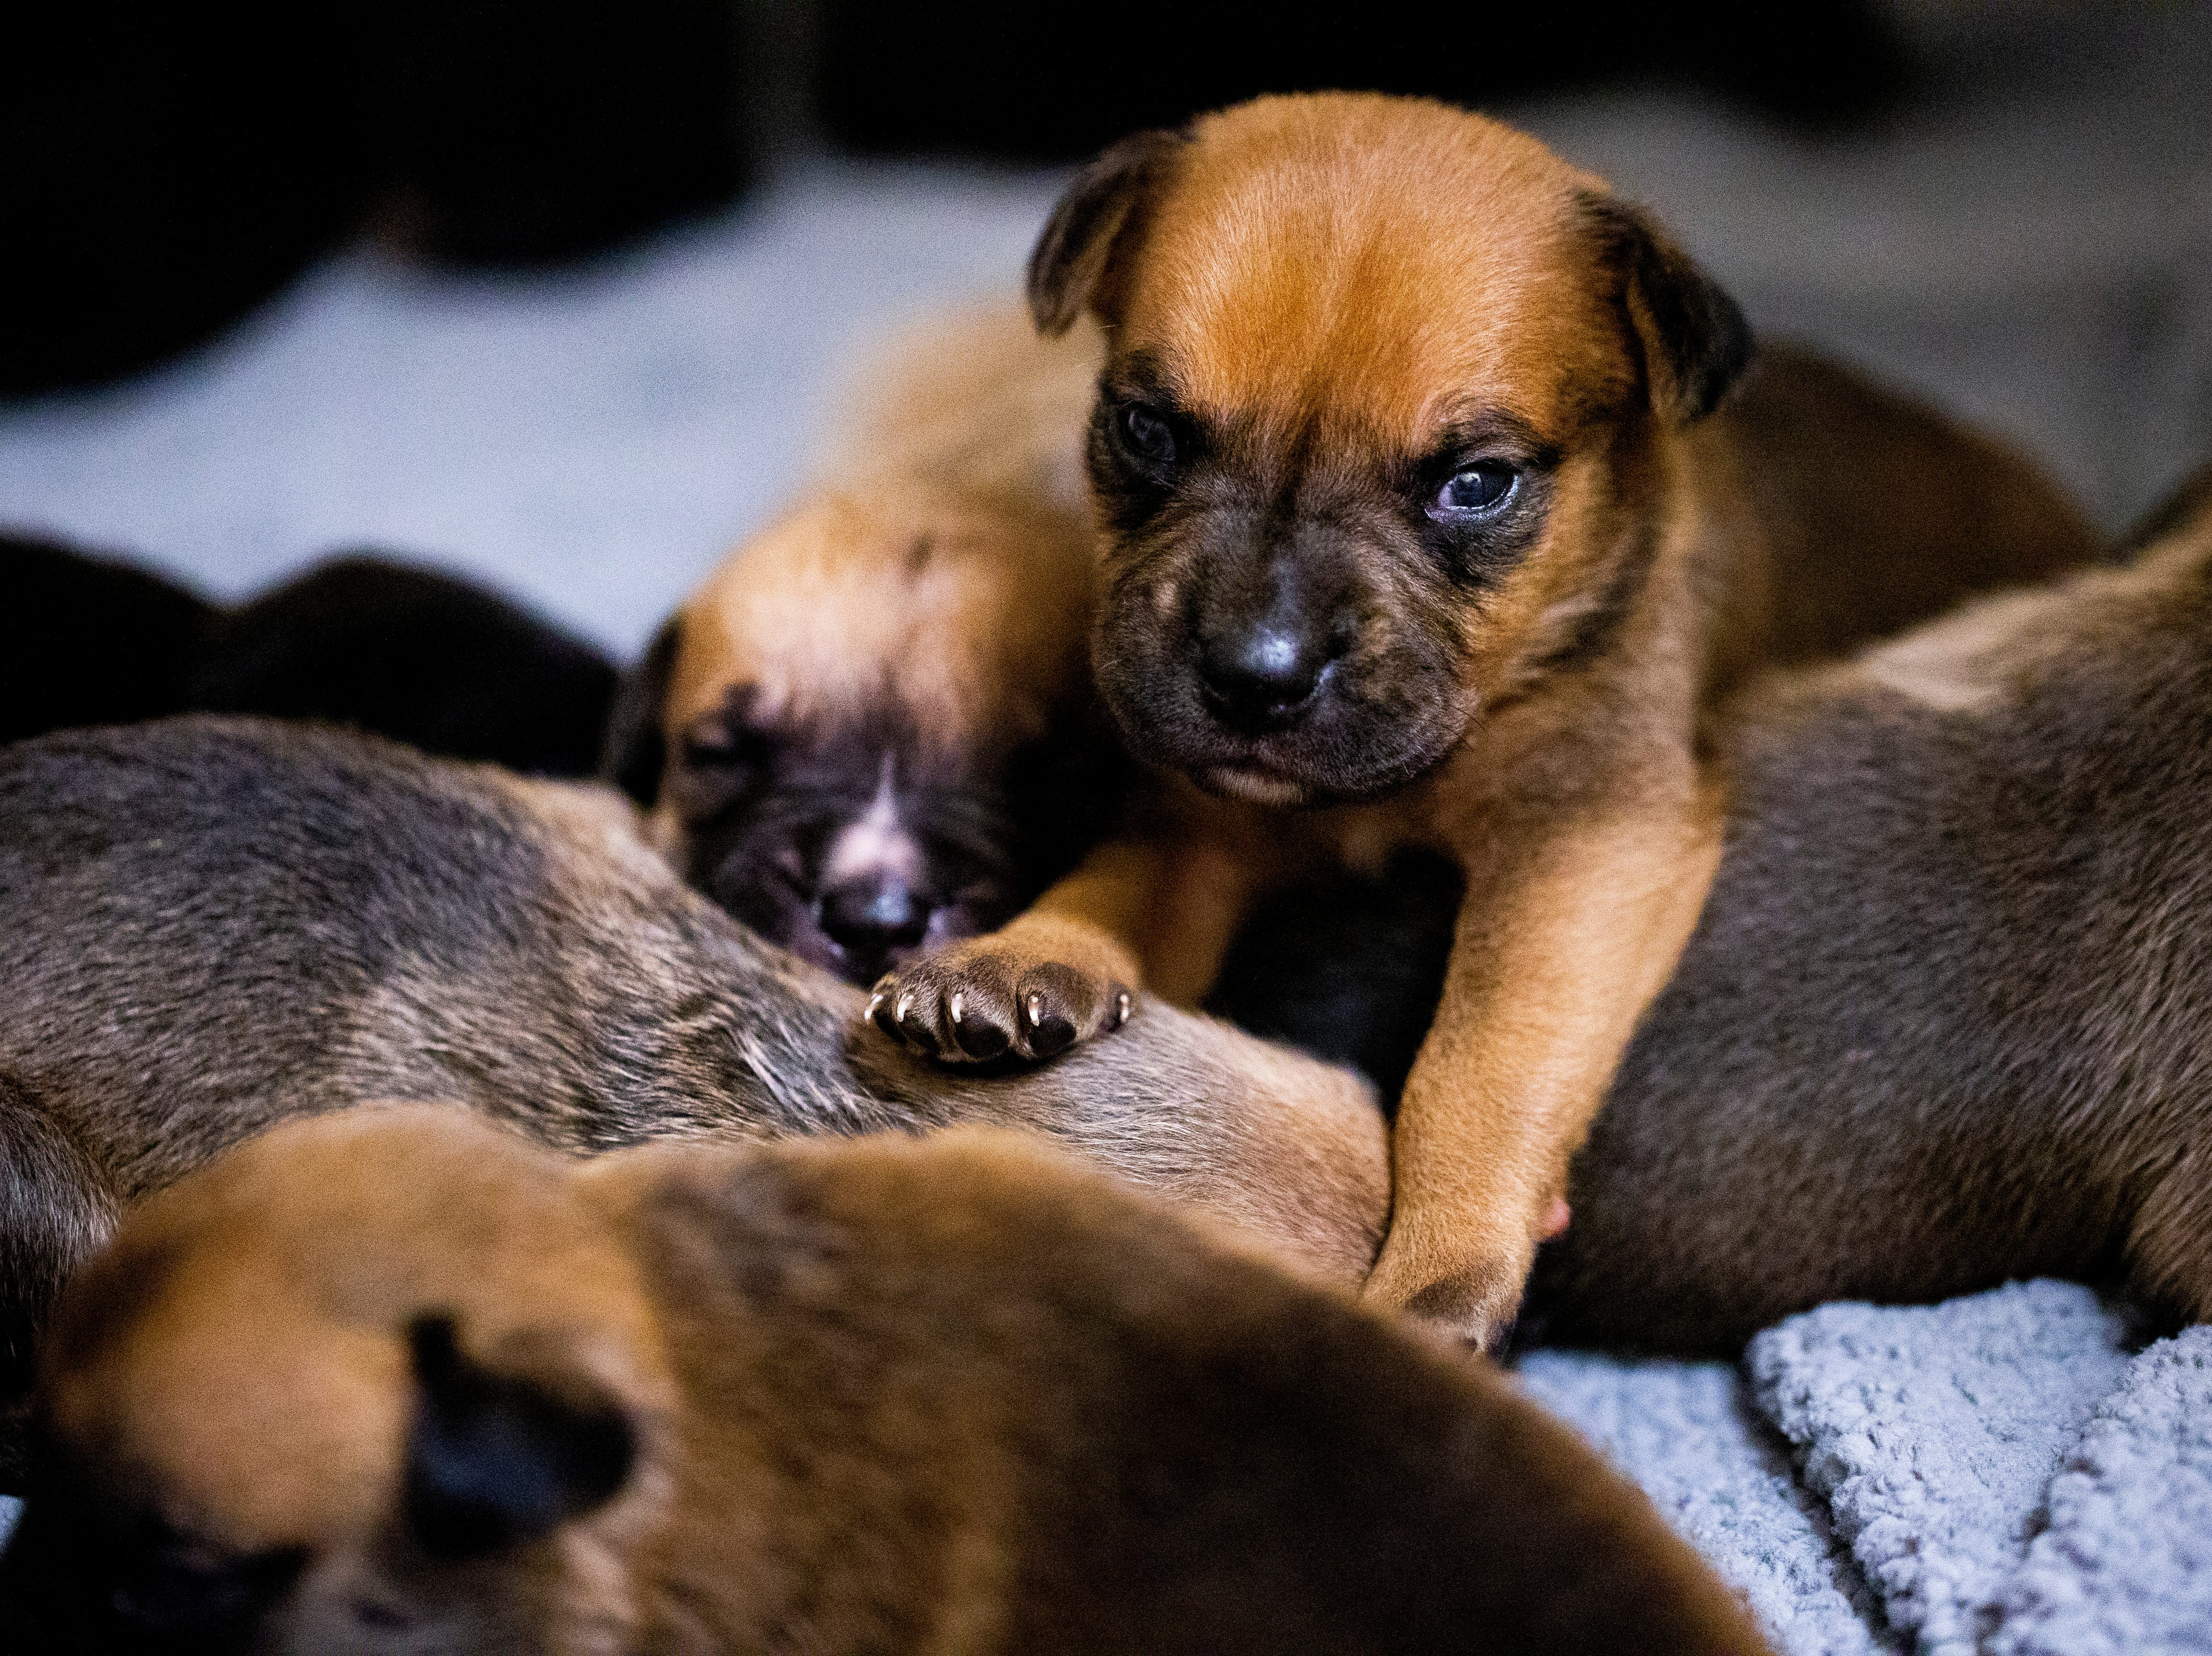 Nine terrier mix puppies, seen here at the Humane Society Naples main shelter on Wednesday, Oct. 10, 2018, along with their mother and other dogs in the path of Hurricane Michael, were rescued by the Humane Society Naples the day before the storm made landfall in the Panhandle.